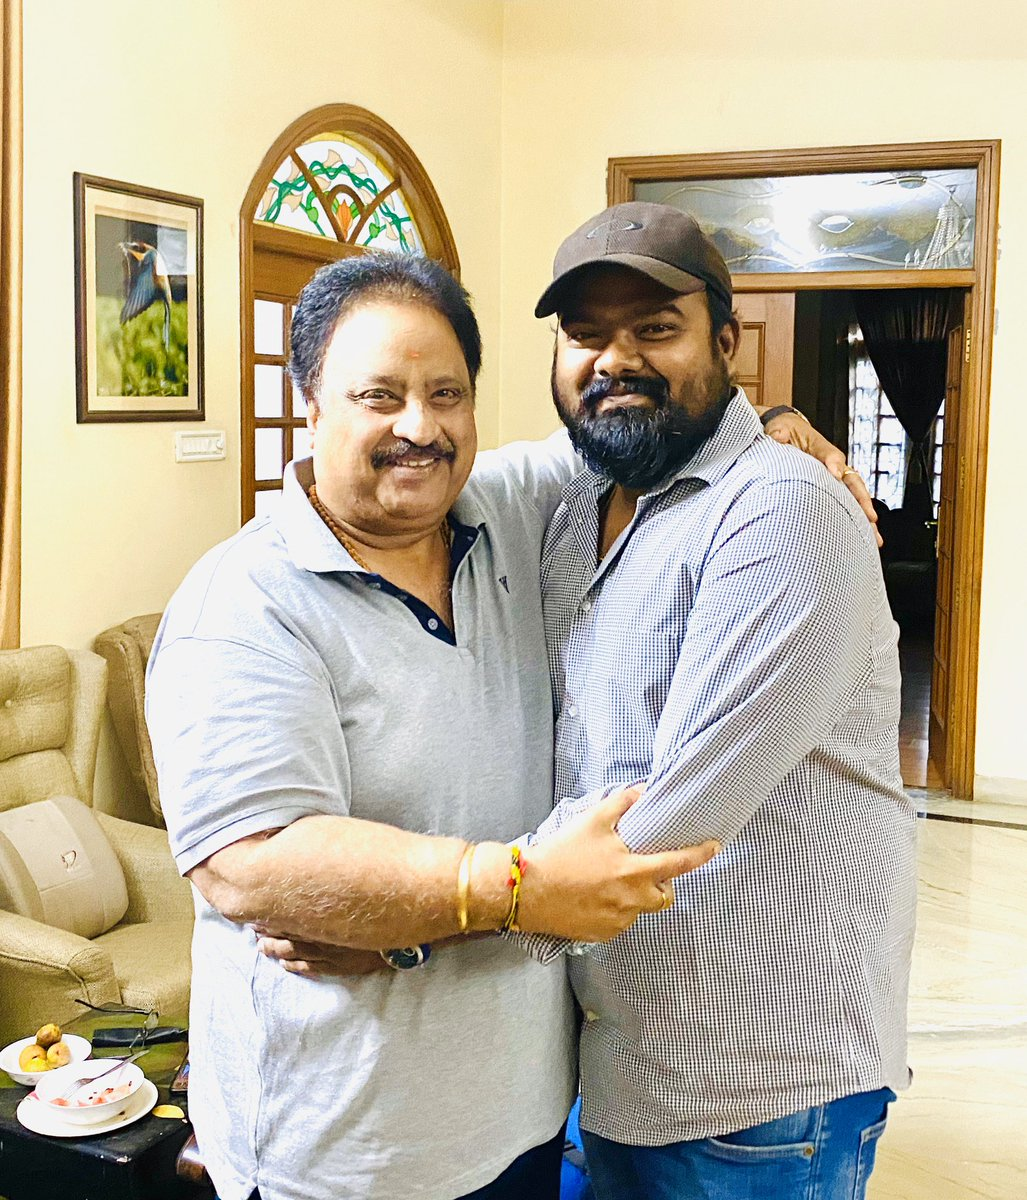 Ap Jithender Reddy On Twitter Heartiest Congratulations To Director Venkykudumula On The Grand Success Of Bheeshma Movie Fantastic Story Screenplay Dialogues By Venkykudumula Superb Acting By Actor Nithiin Iamrashmika Watched With